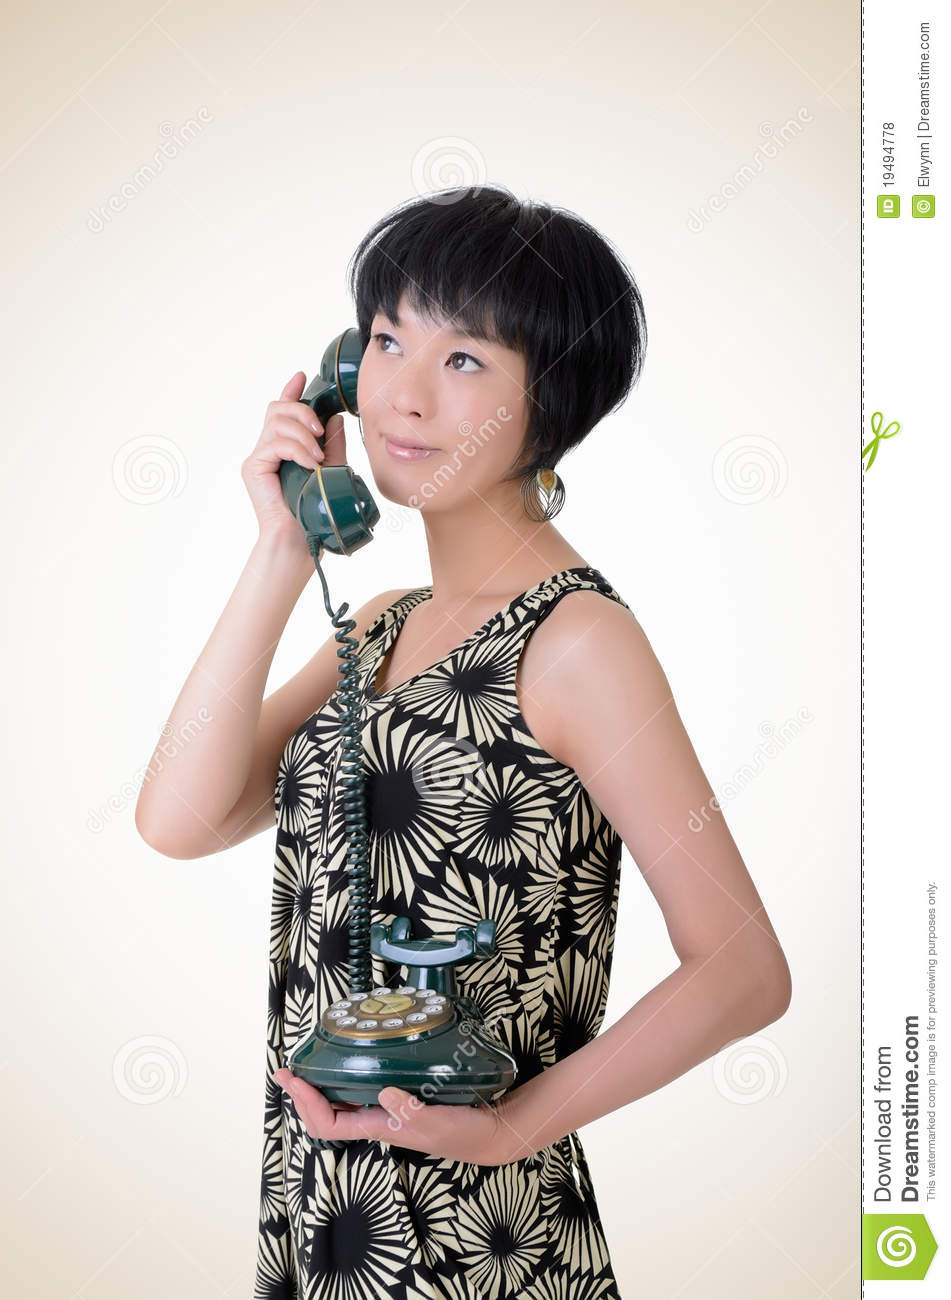 Mature asian ladies pictures 2 322 Mature Elegant Asian Woman Photos Free Royalty Free Stock Photos From Dreamstime